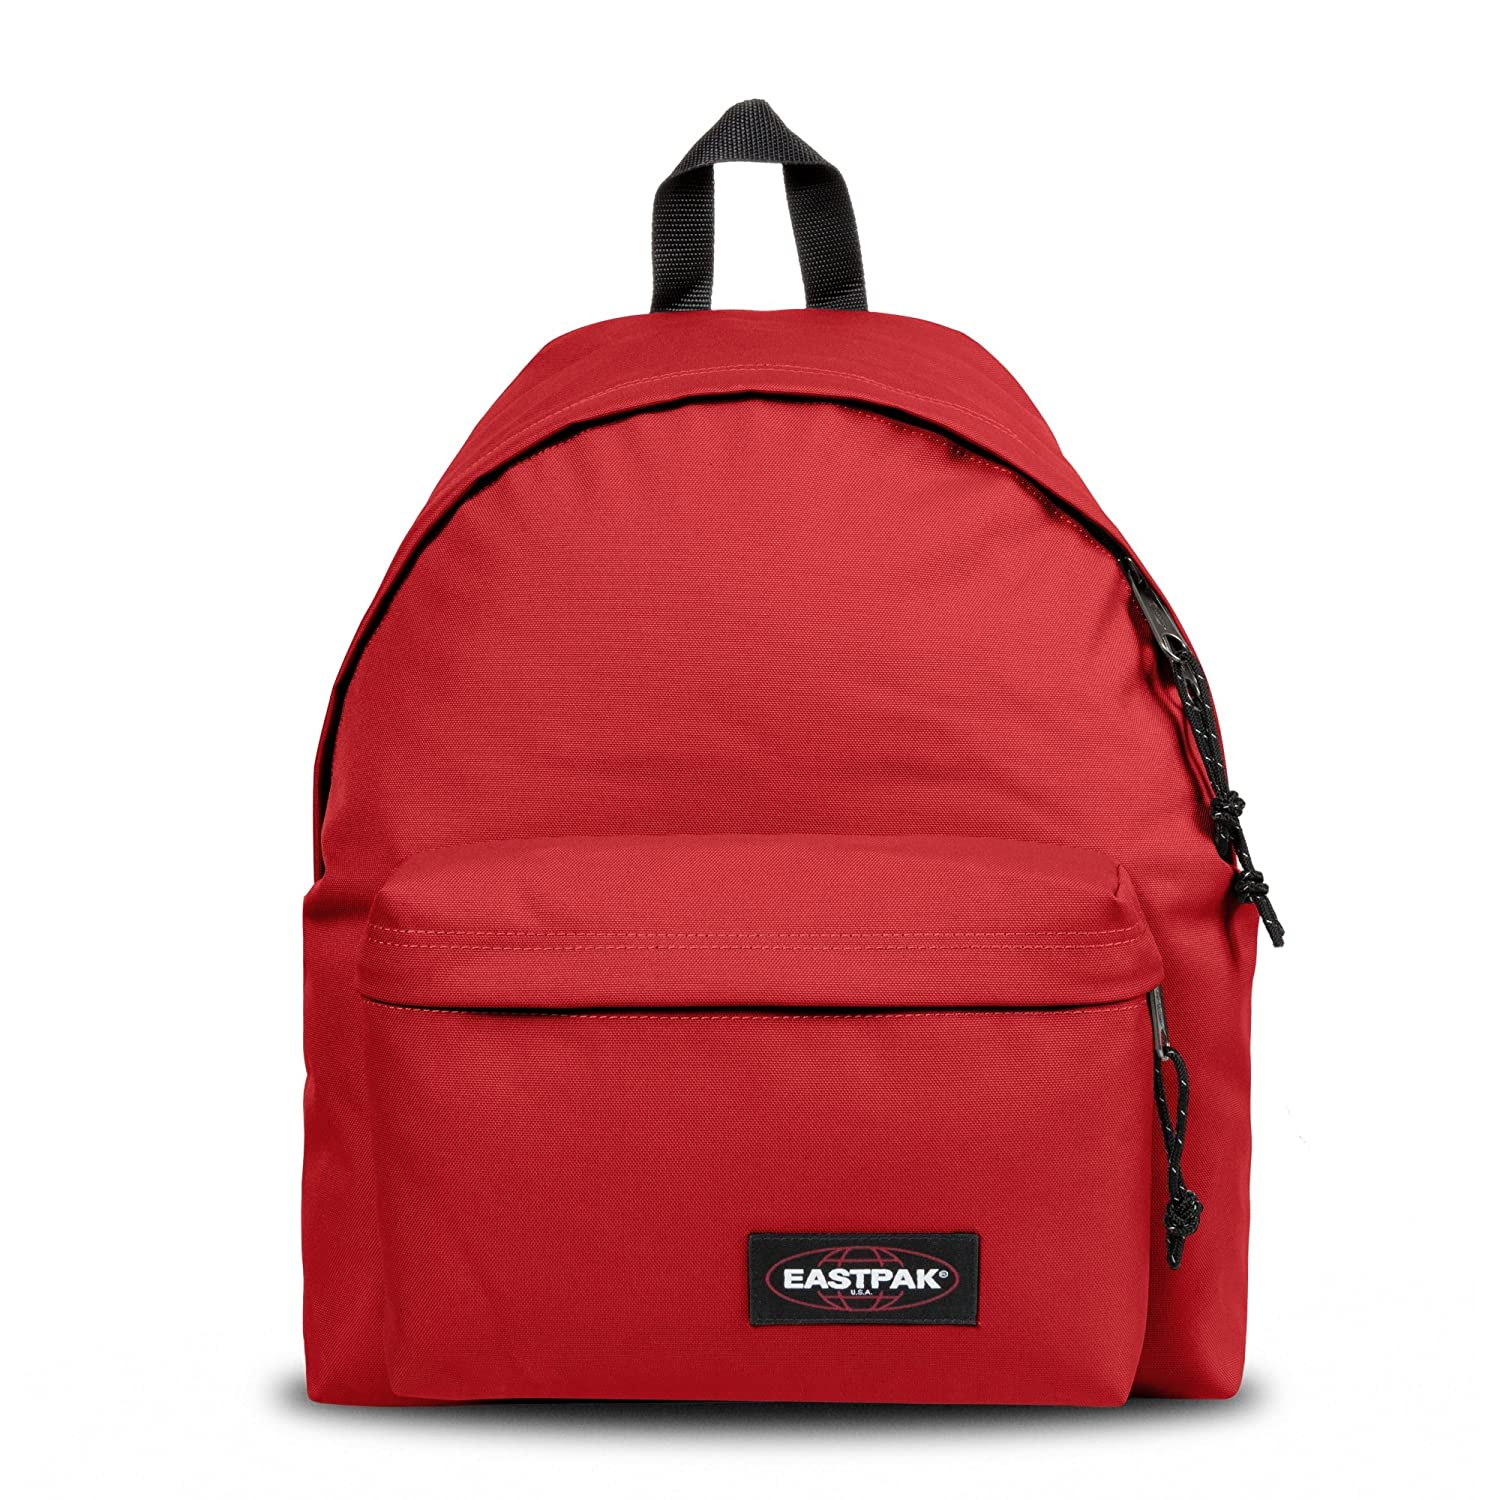 093db43be41 Shoptagr | Eastpak Padded Pak'r Backpack, 24 L, Apple Pick Red by ...